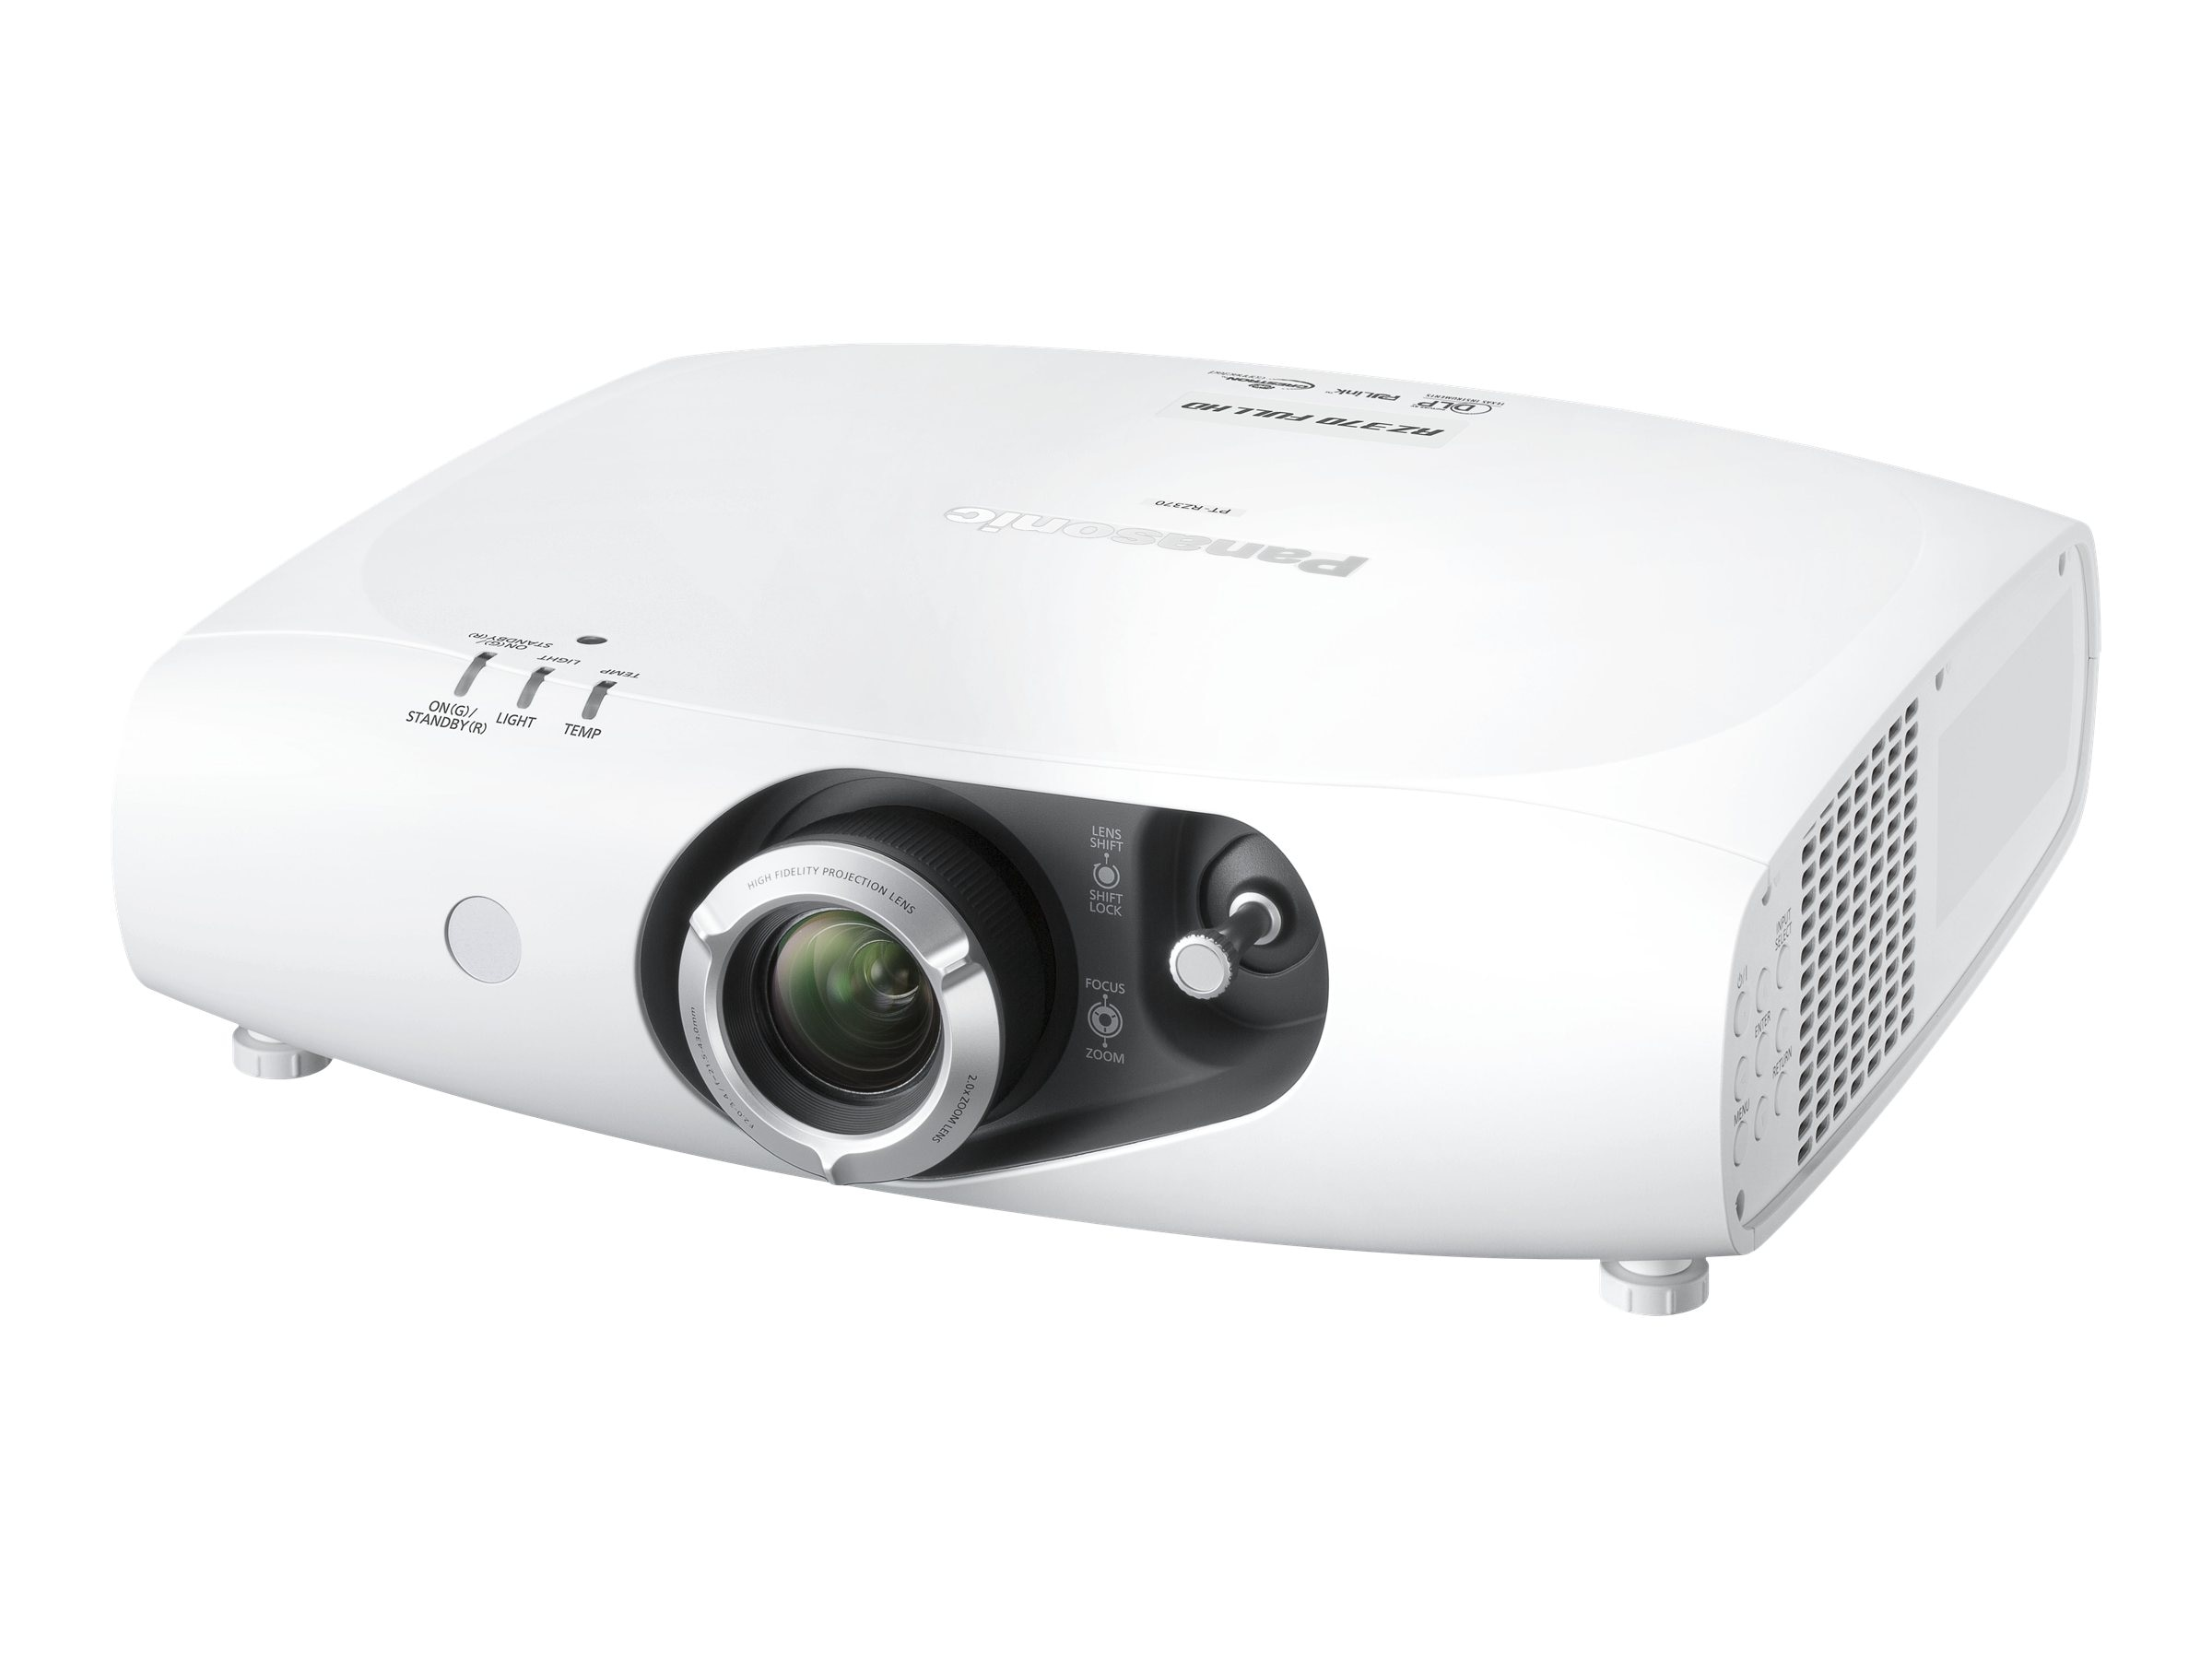 Panasonic PTRZ370U Full HD Projector, 3500 Lumens